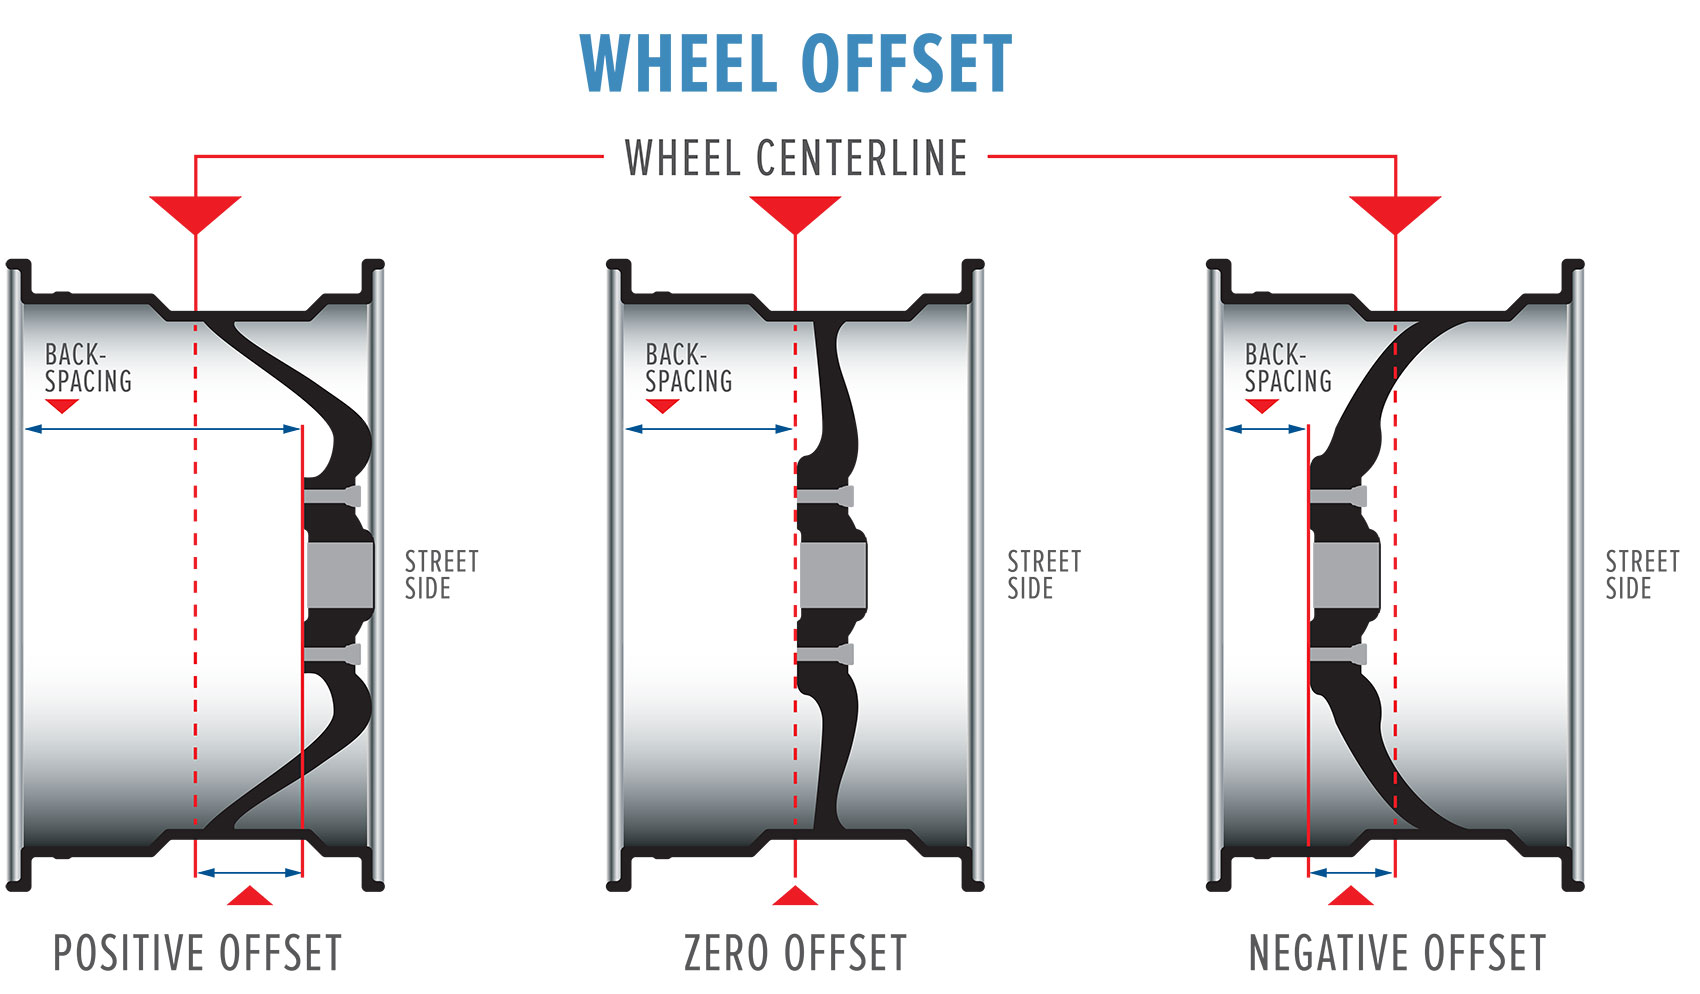 hight resolution of wheel offset explained with positive offset zero offset and negative offset